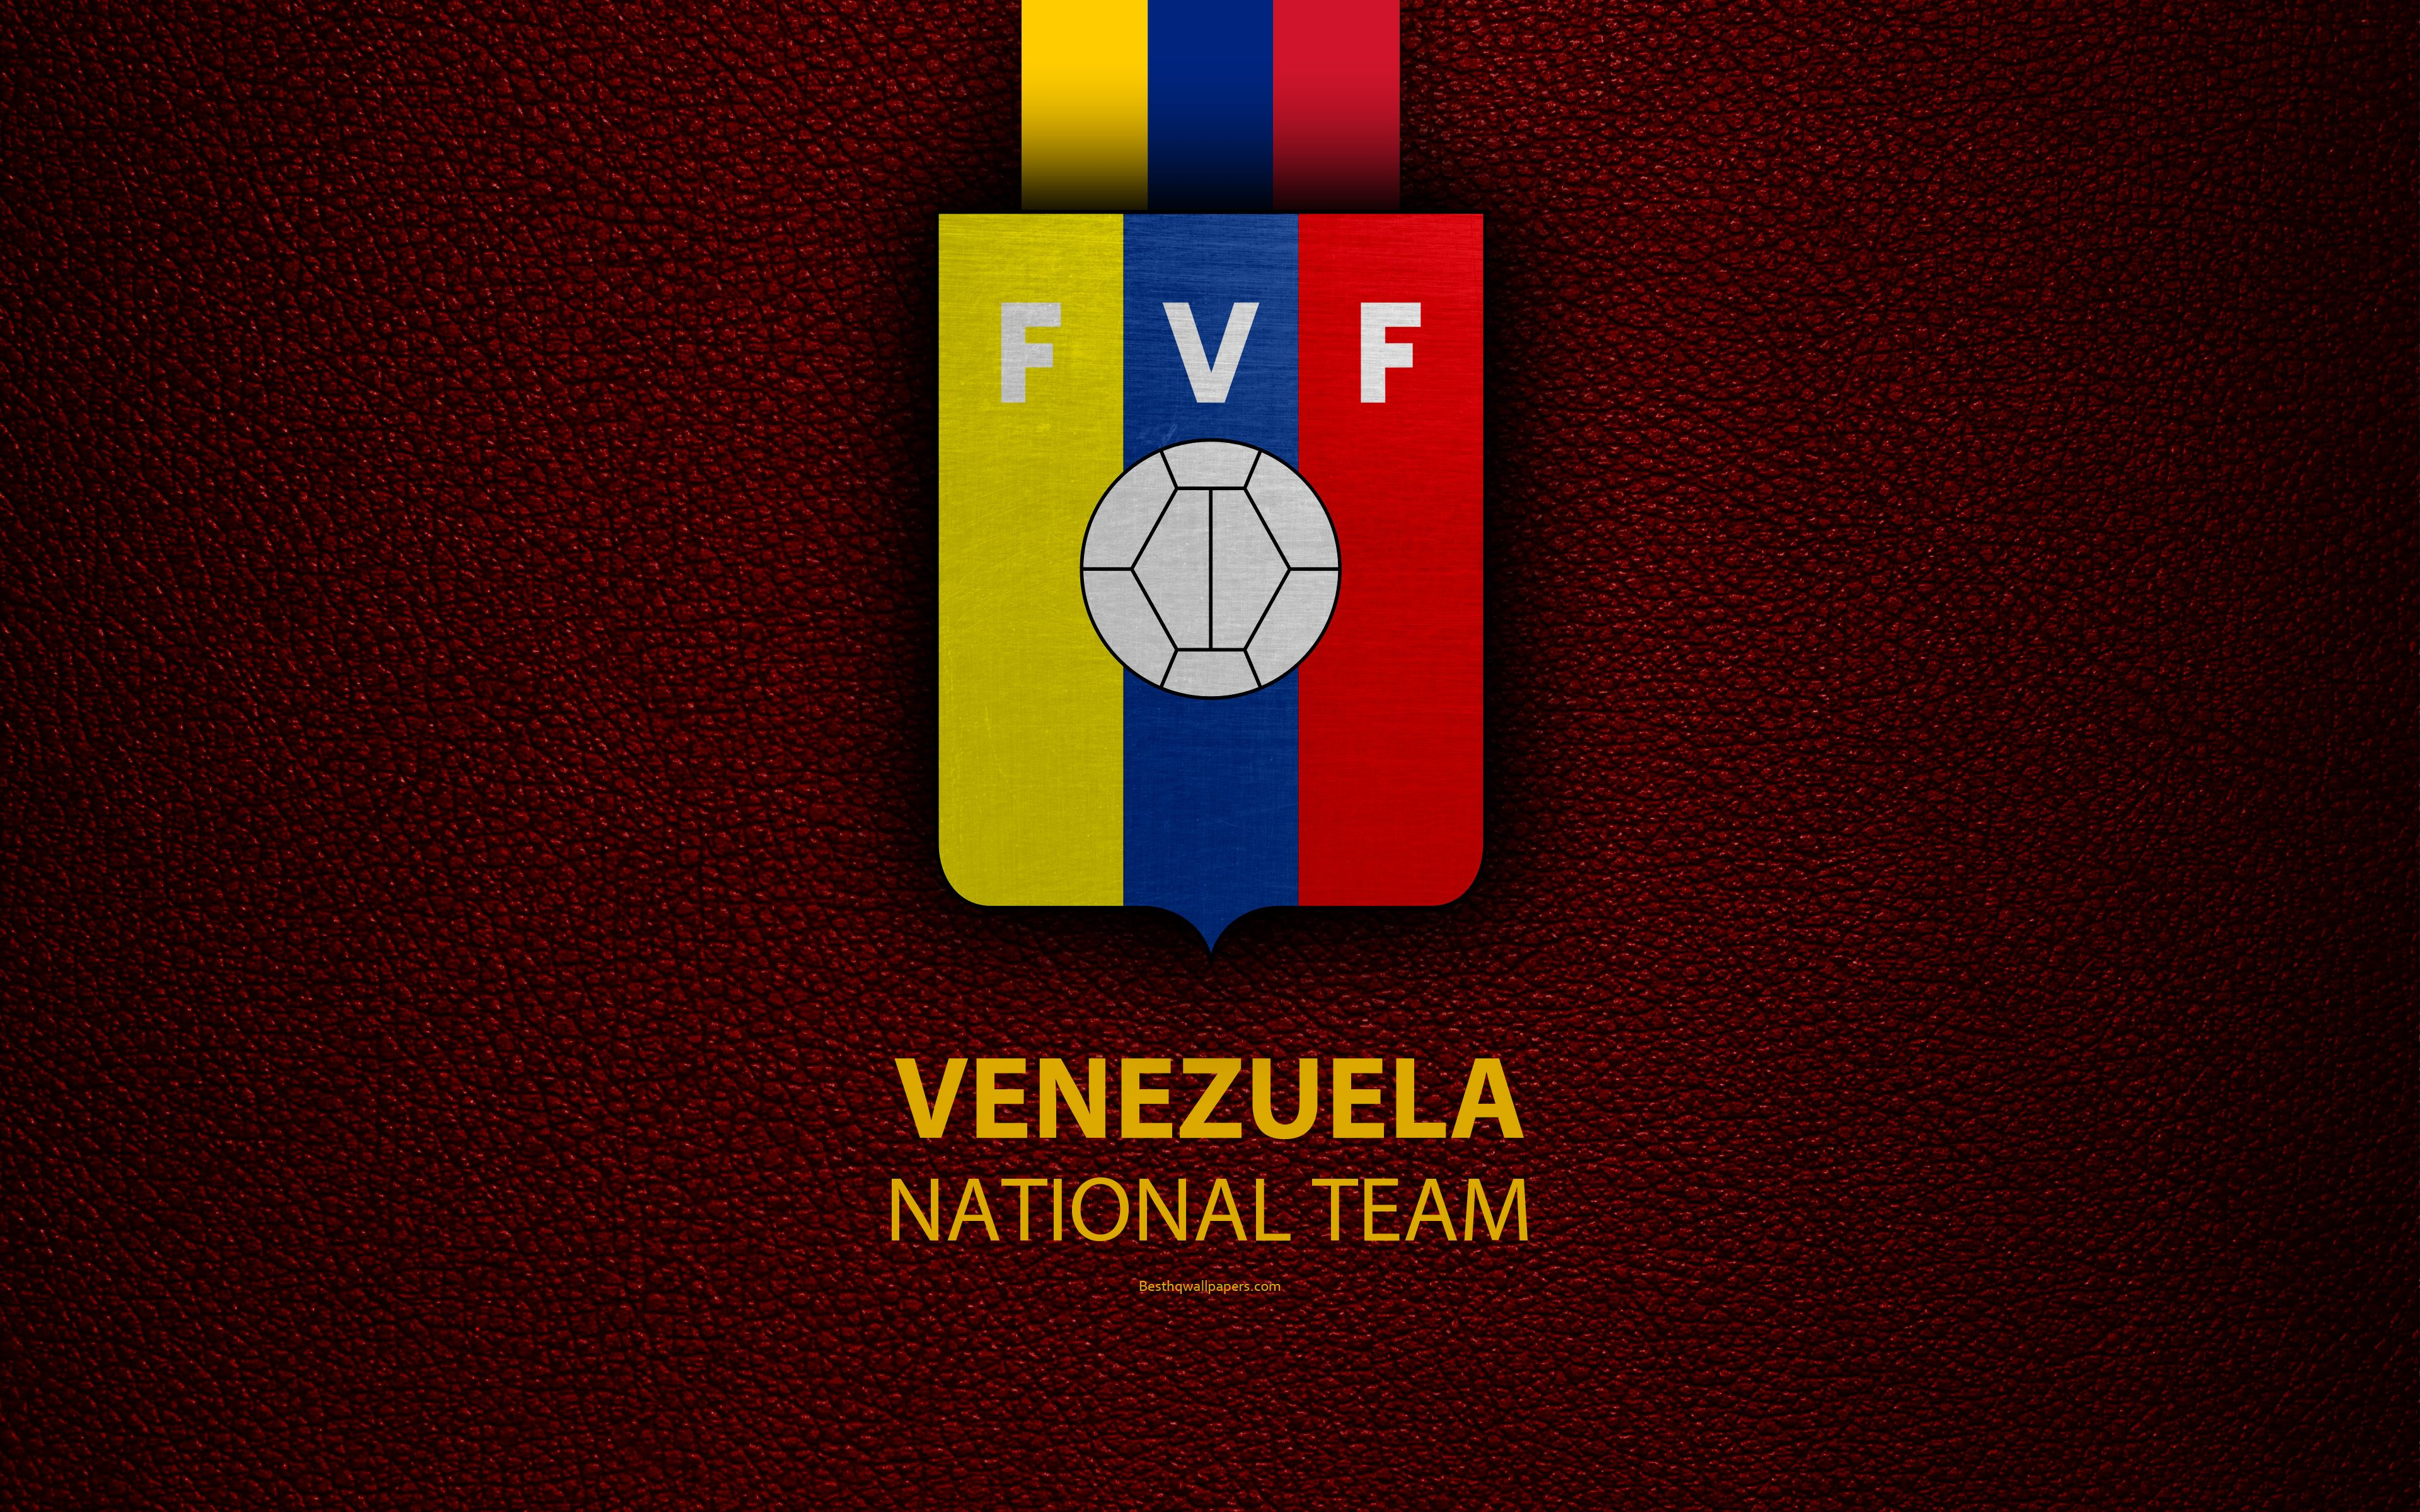 3840x2400 Venezuela National Football Team, 4k, Leather Texture ...